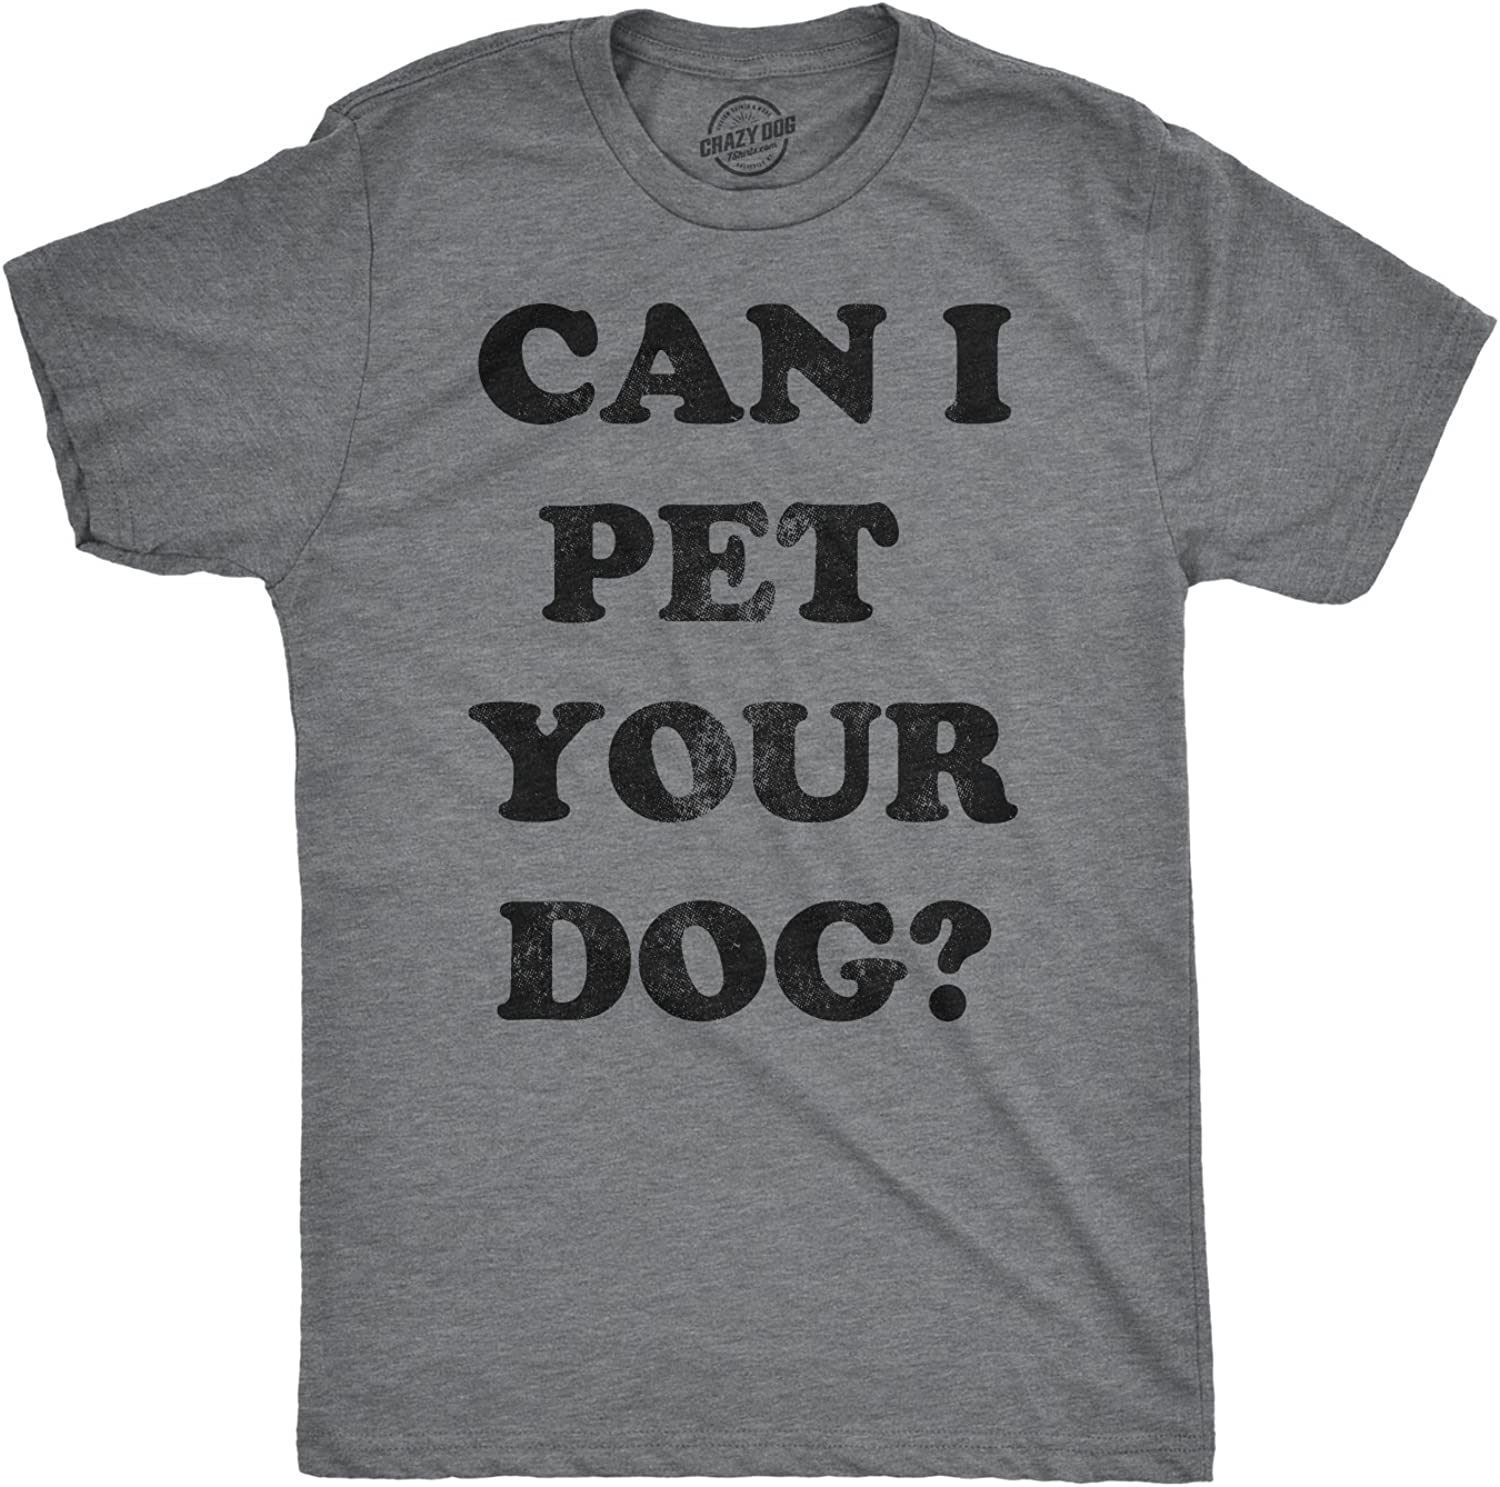 Mens Can I Pet Your Dog Tshirt Funny Cute Animal Lover Puppy Tee for Guys